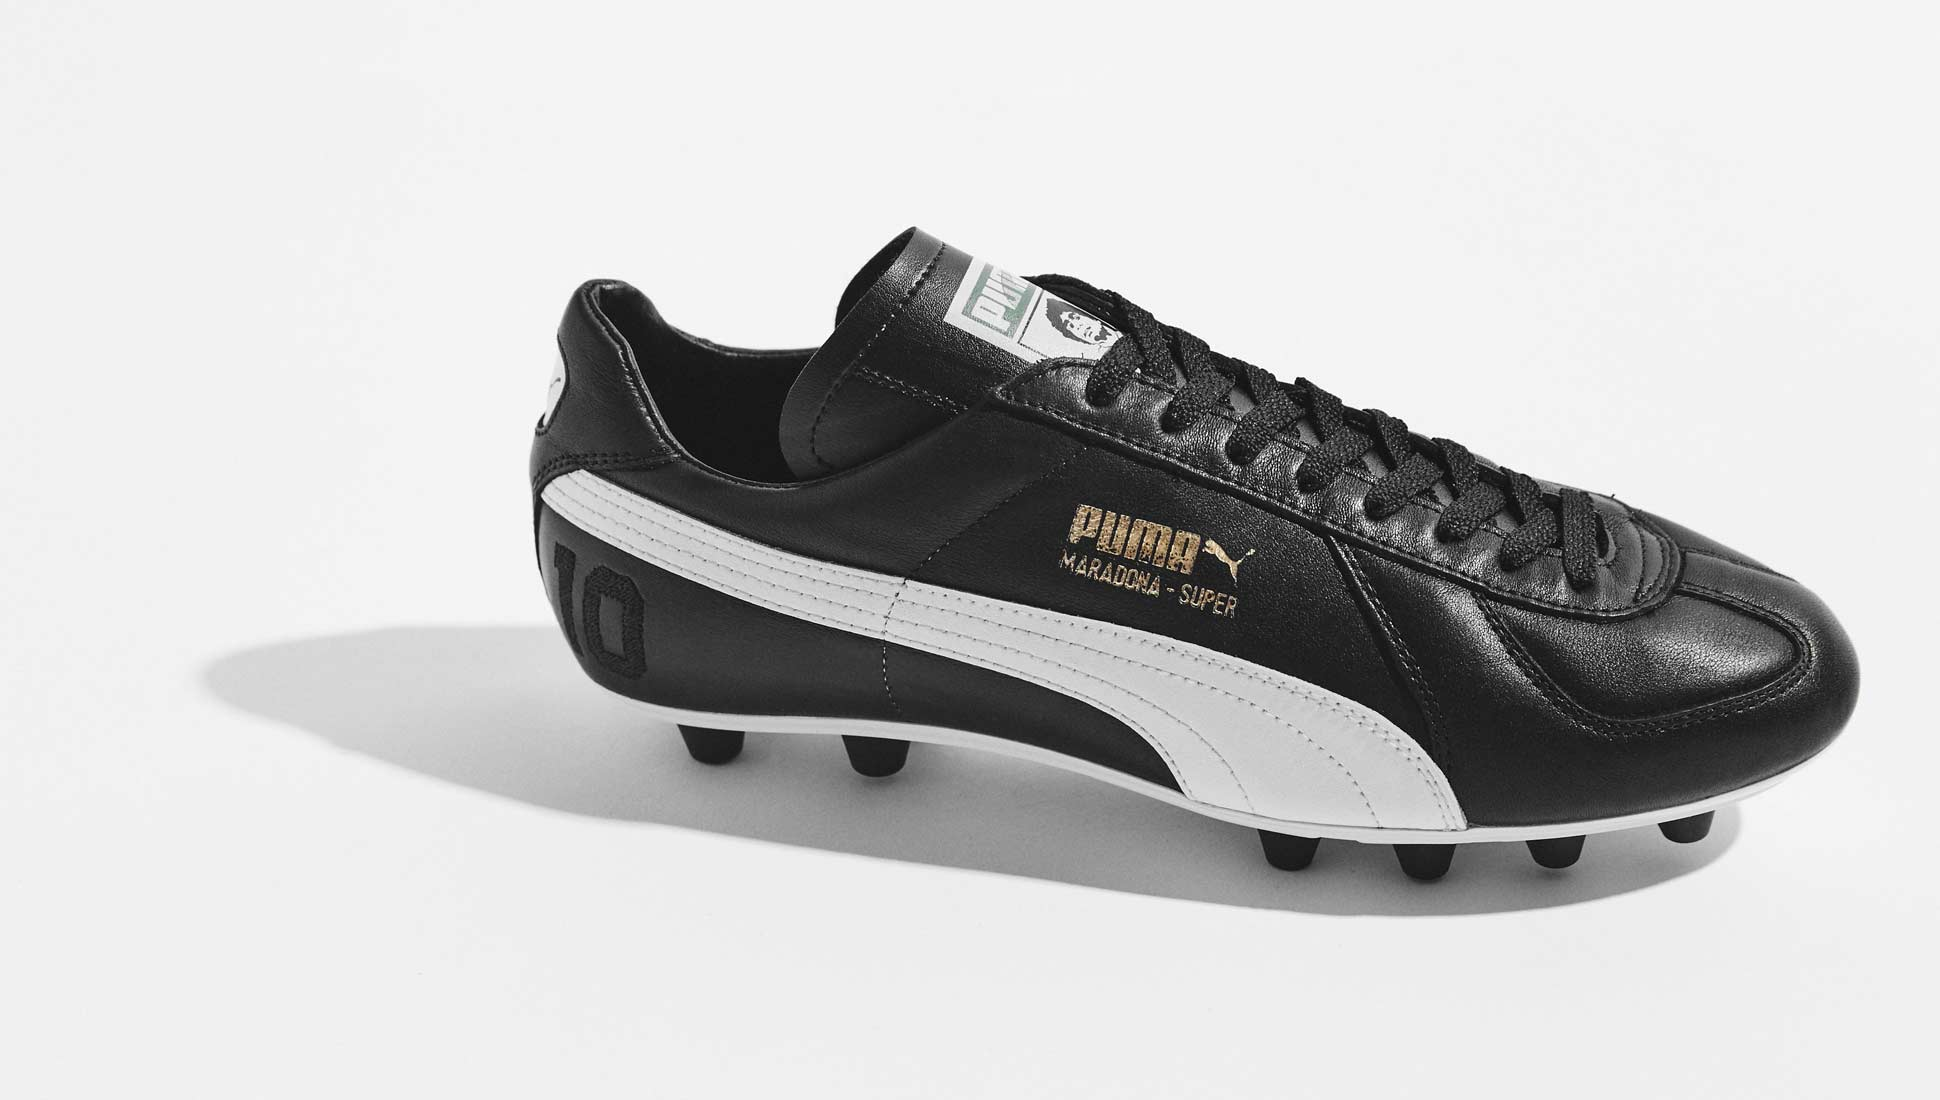 chaussures-football-puma-king-maradona-super-1